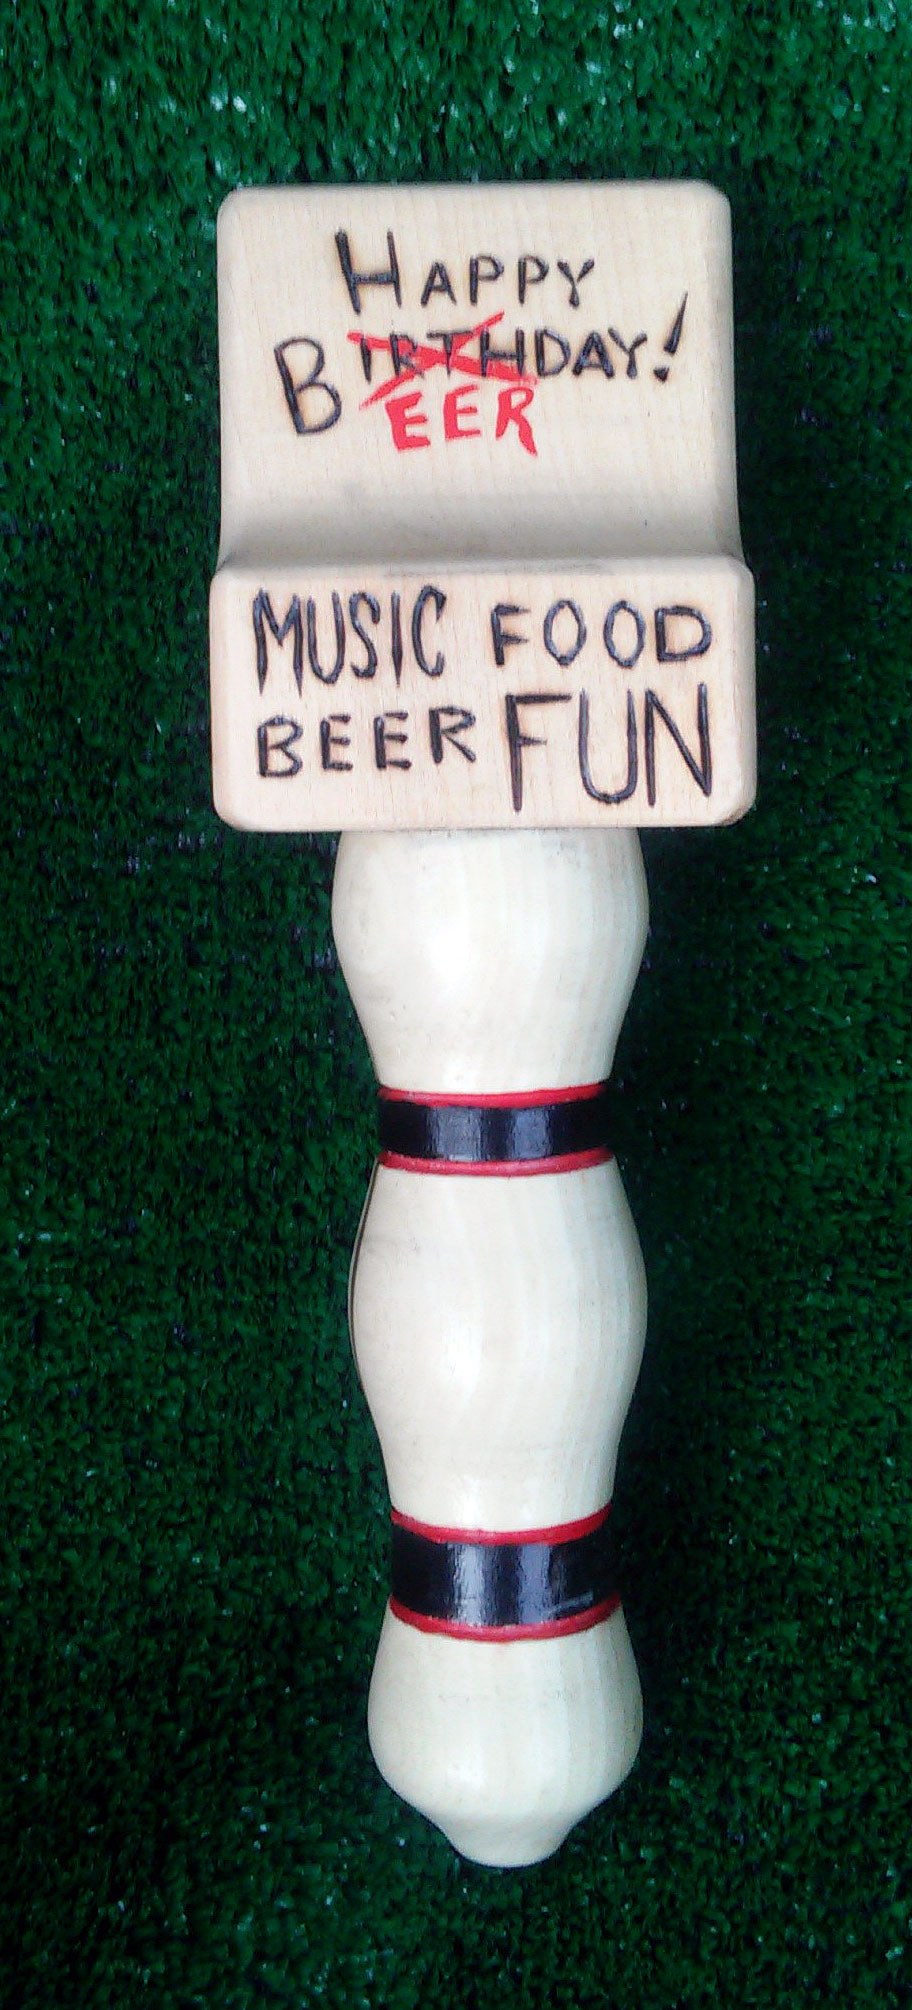 Beer taps are the latest addition to our product line. This was the first custom design. More to come!